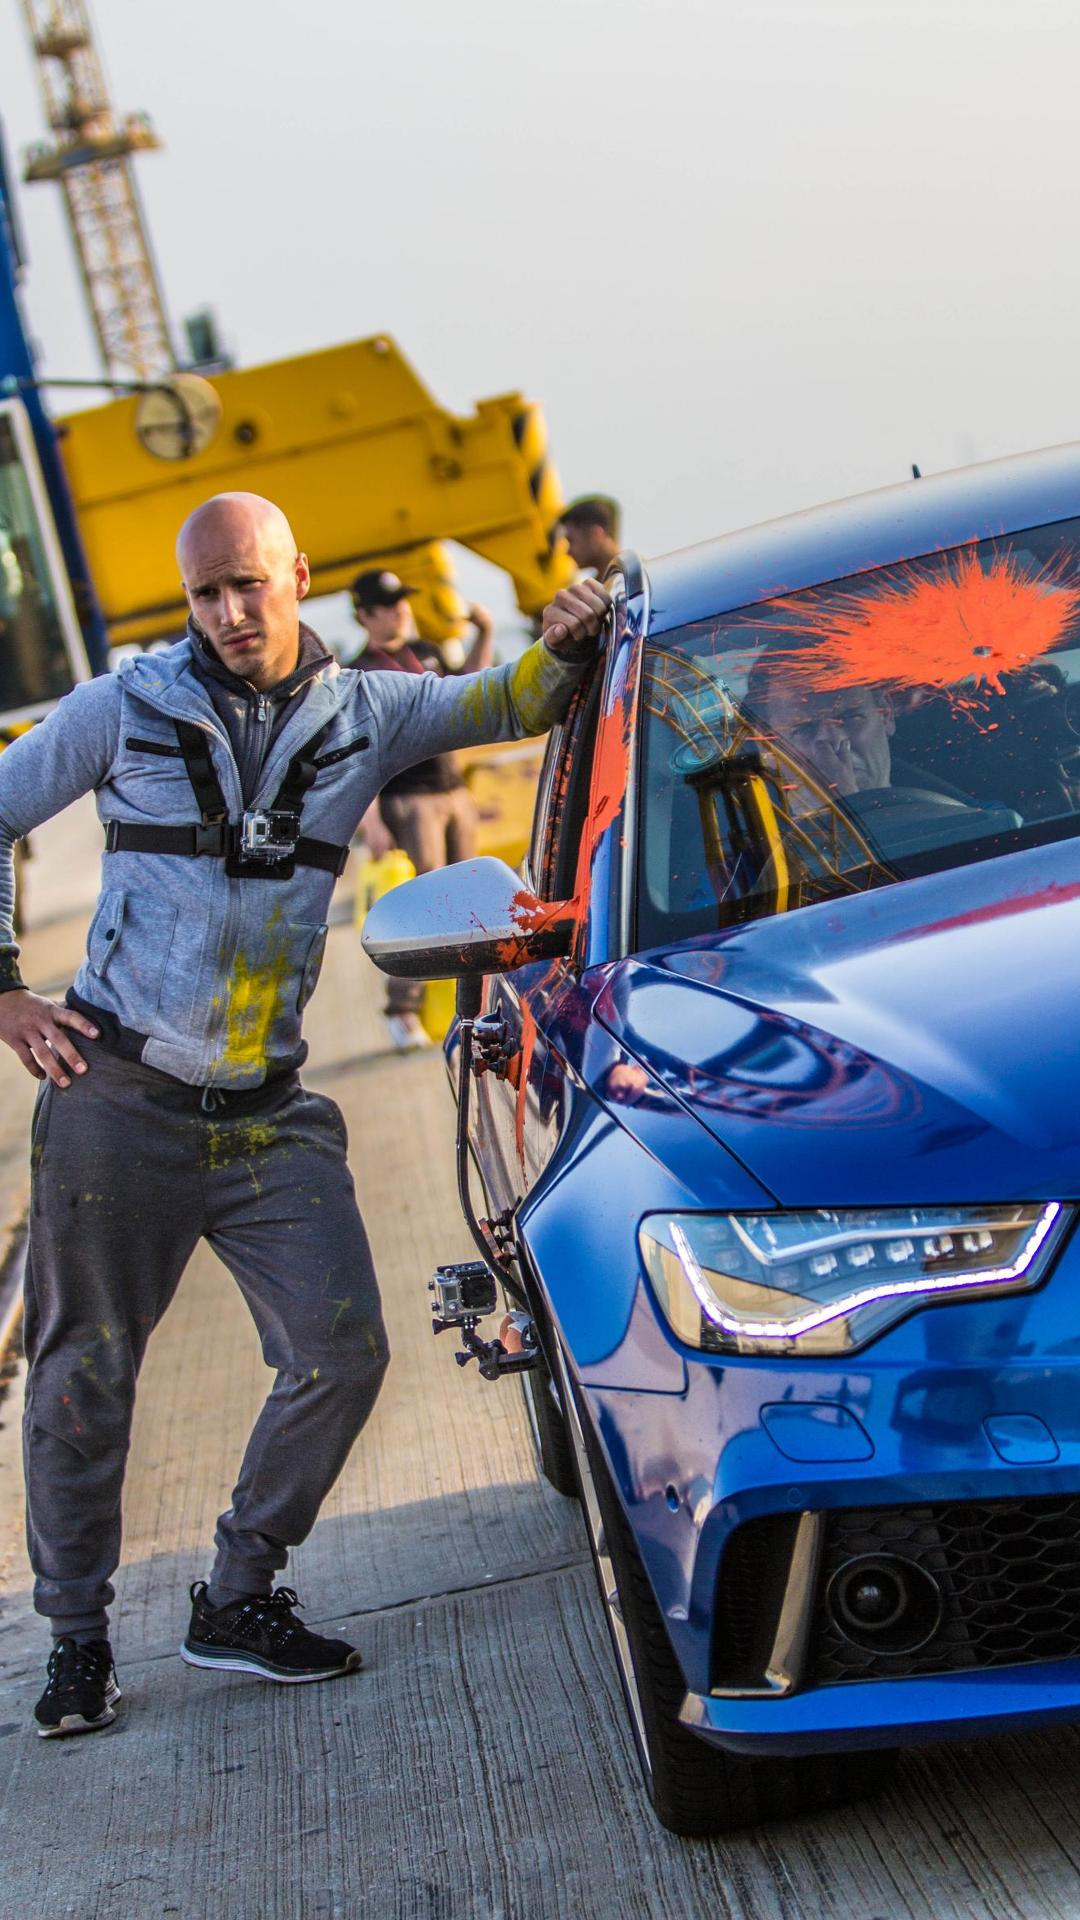 Ex-Stig Ben Collins in an Audi RS 6 battles parkour ace in paint-ball fight [videos]